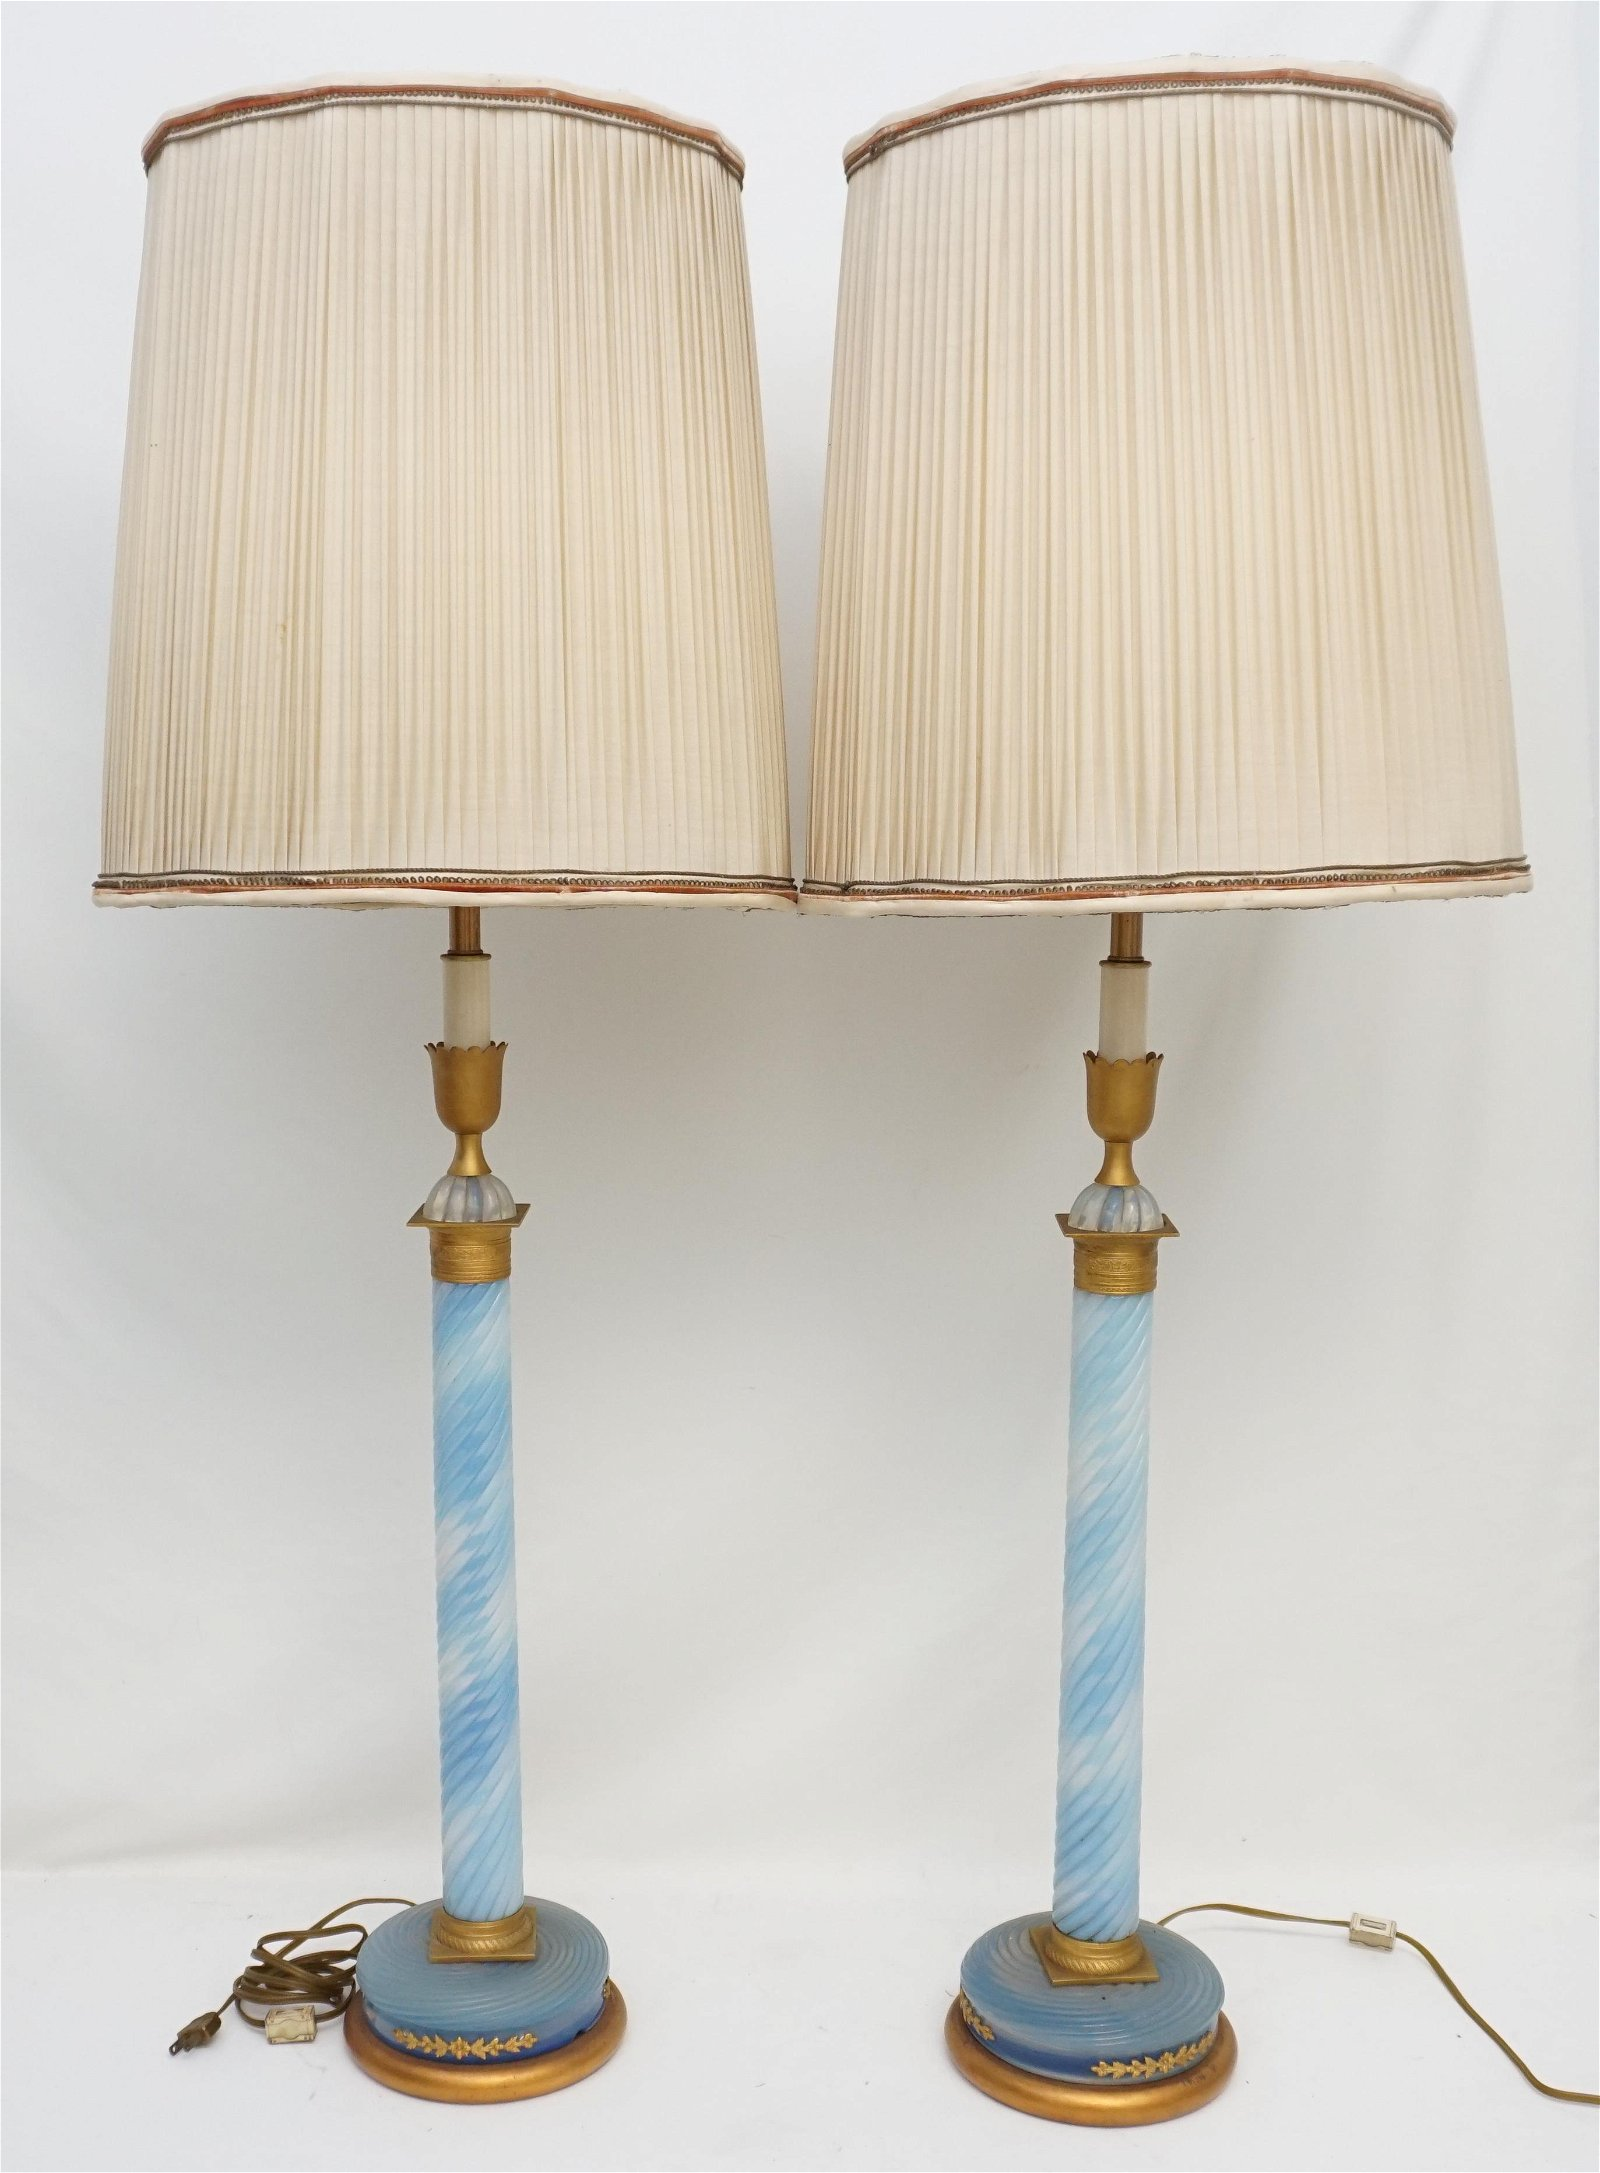 2 TALL BLUE OPALESCENT GLASS GILDED LAMPS